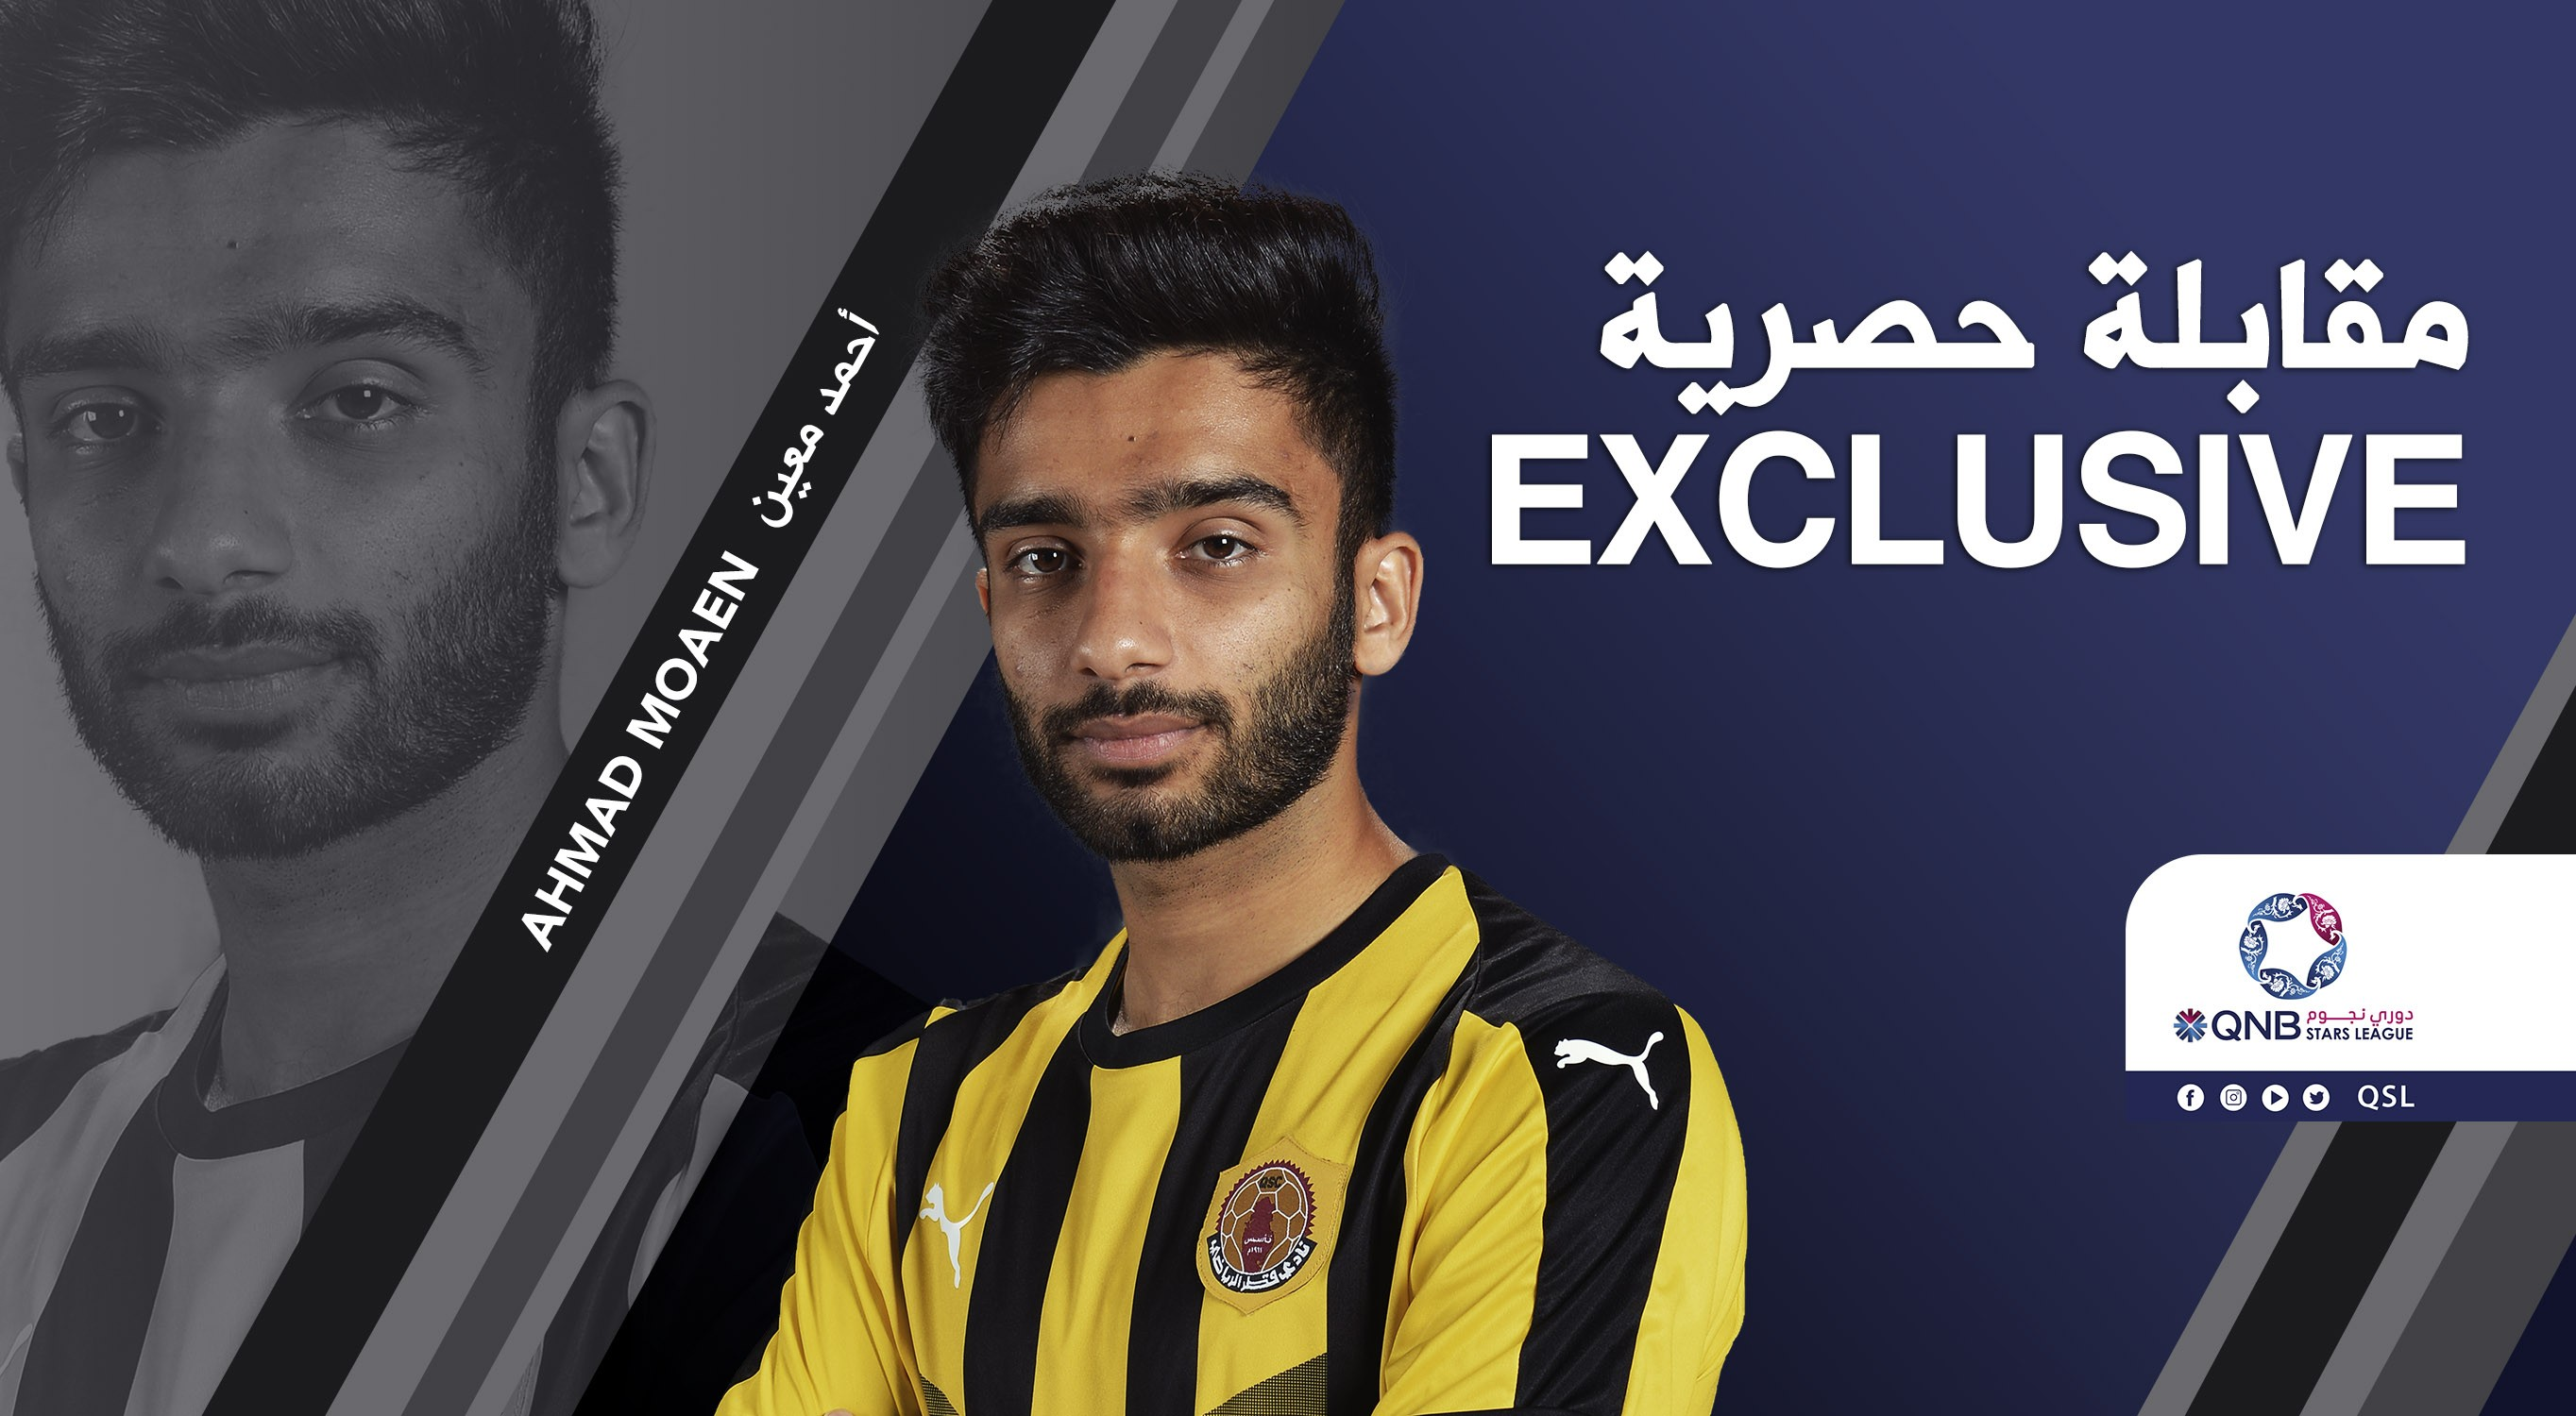 Qatar SC midfielder Ahmed Moein in an exclusive interview with QSL Online.